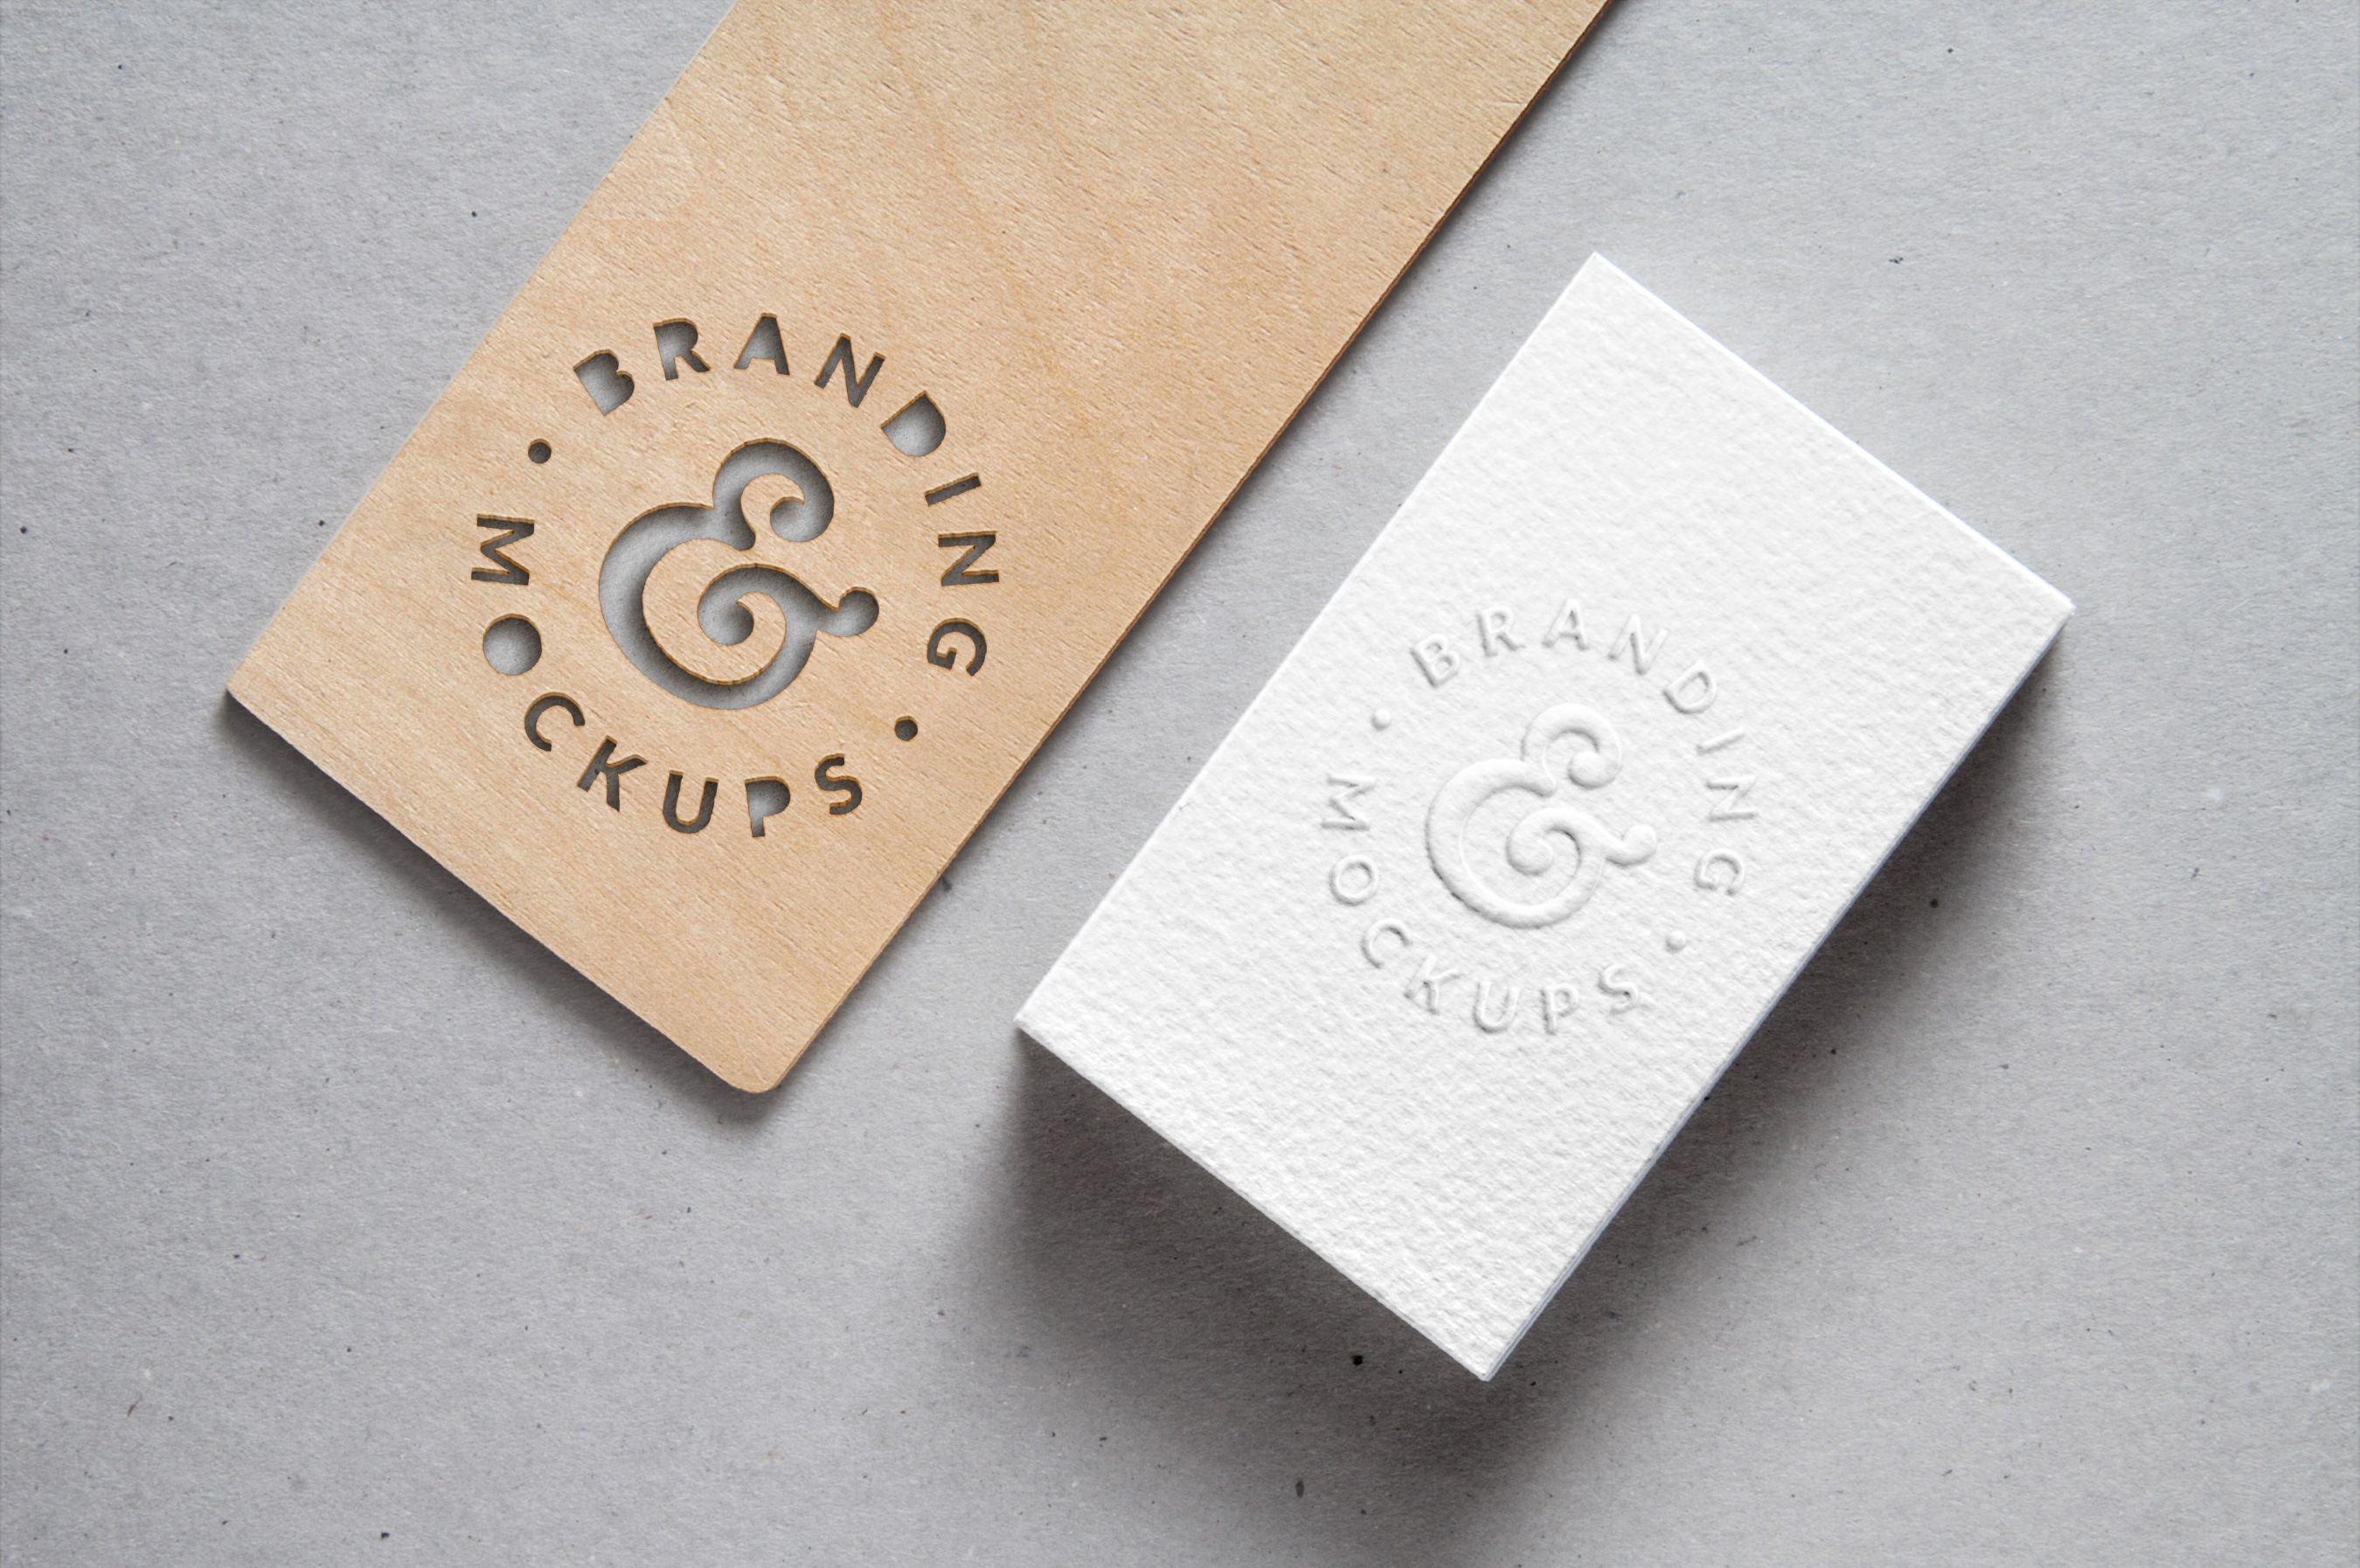 Cutout wood embossed b card mockup businesscard display cutout wood embossed business card mockup in psd design perfect to showcase an original and stylish branding identity project alramifo Image collections